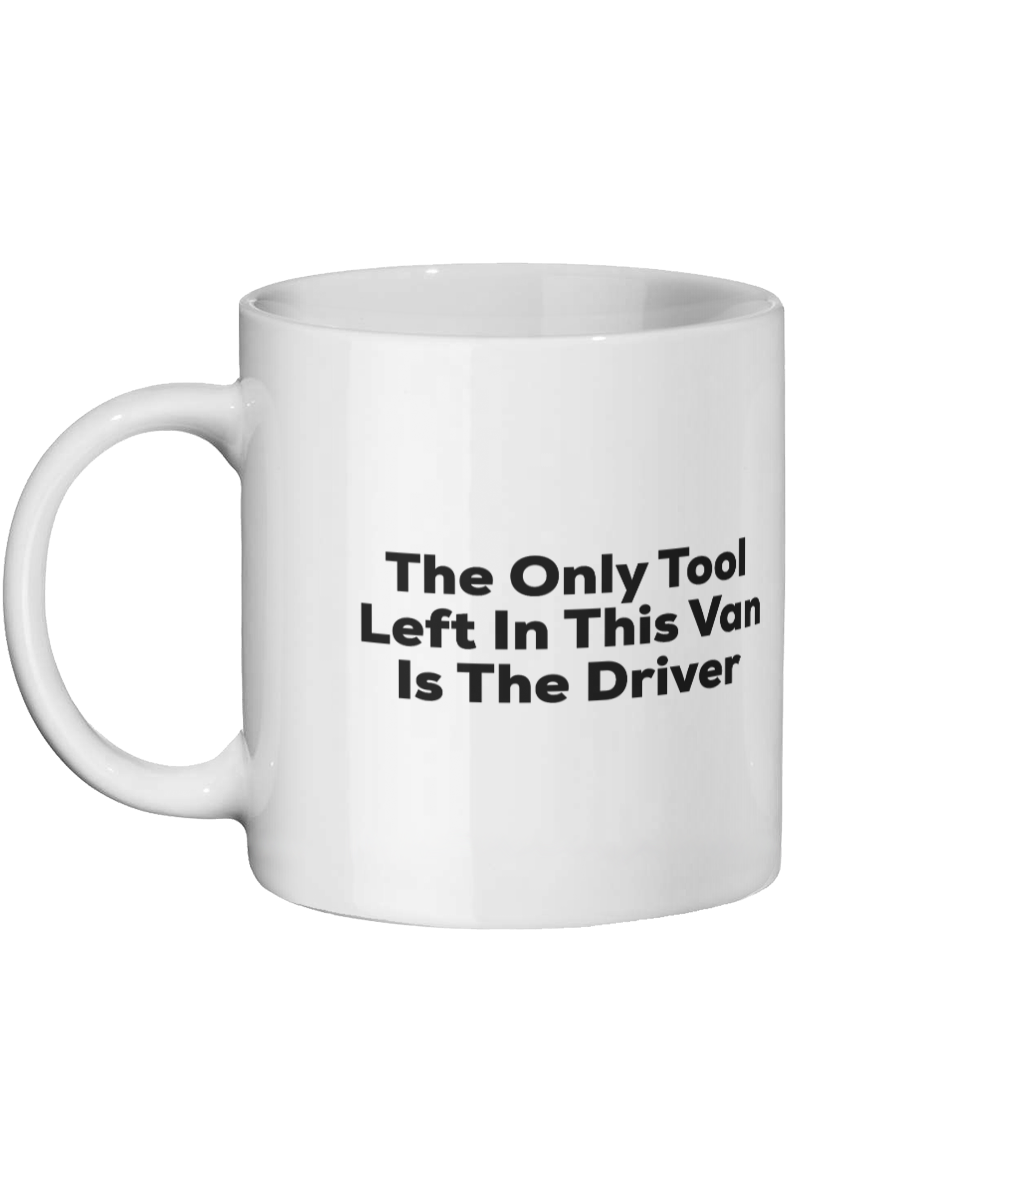 The Only Tool Left In This Van Is the Driver Mug